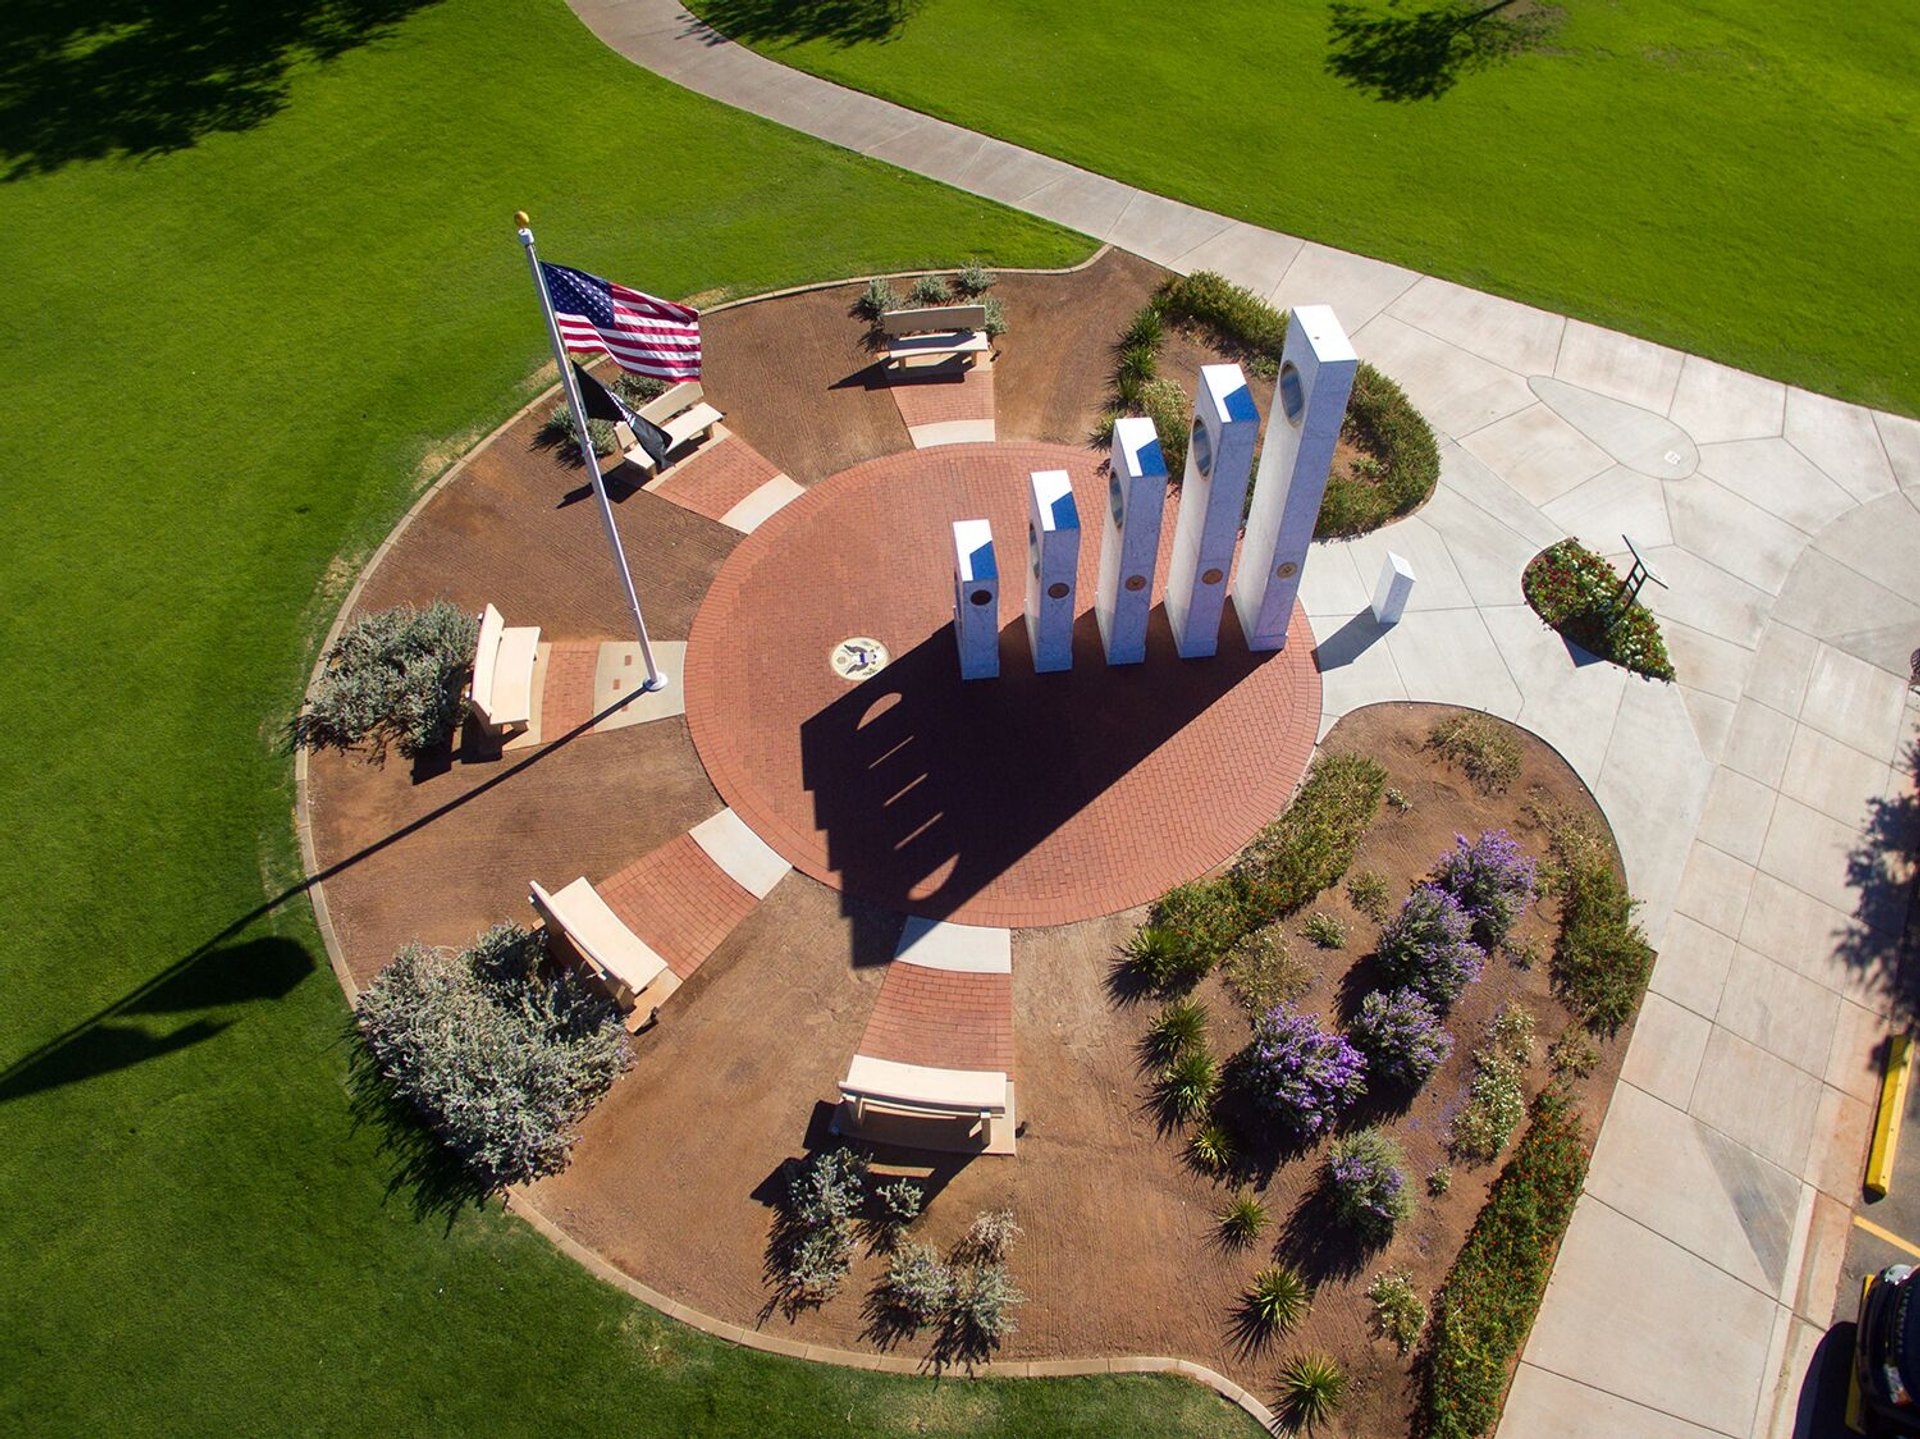 Solar Spotlight at the Anthem Veterans Memorial in Arizona - Best Season 2020